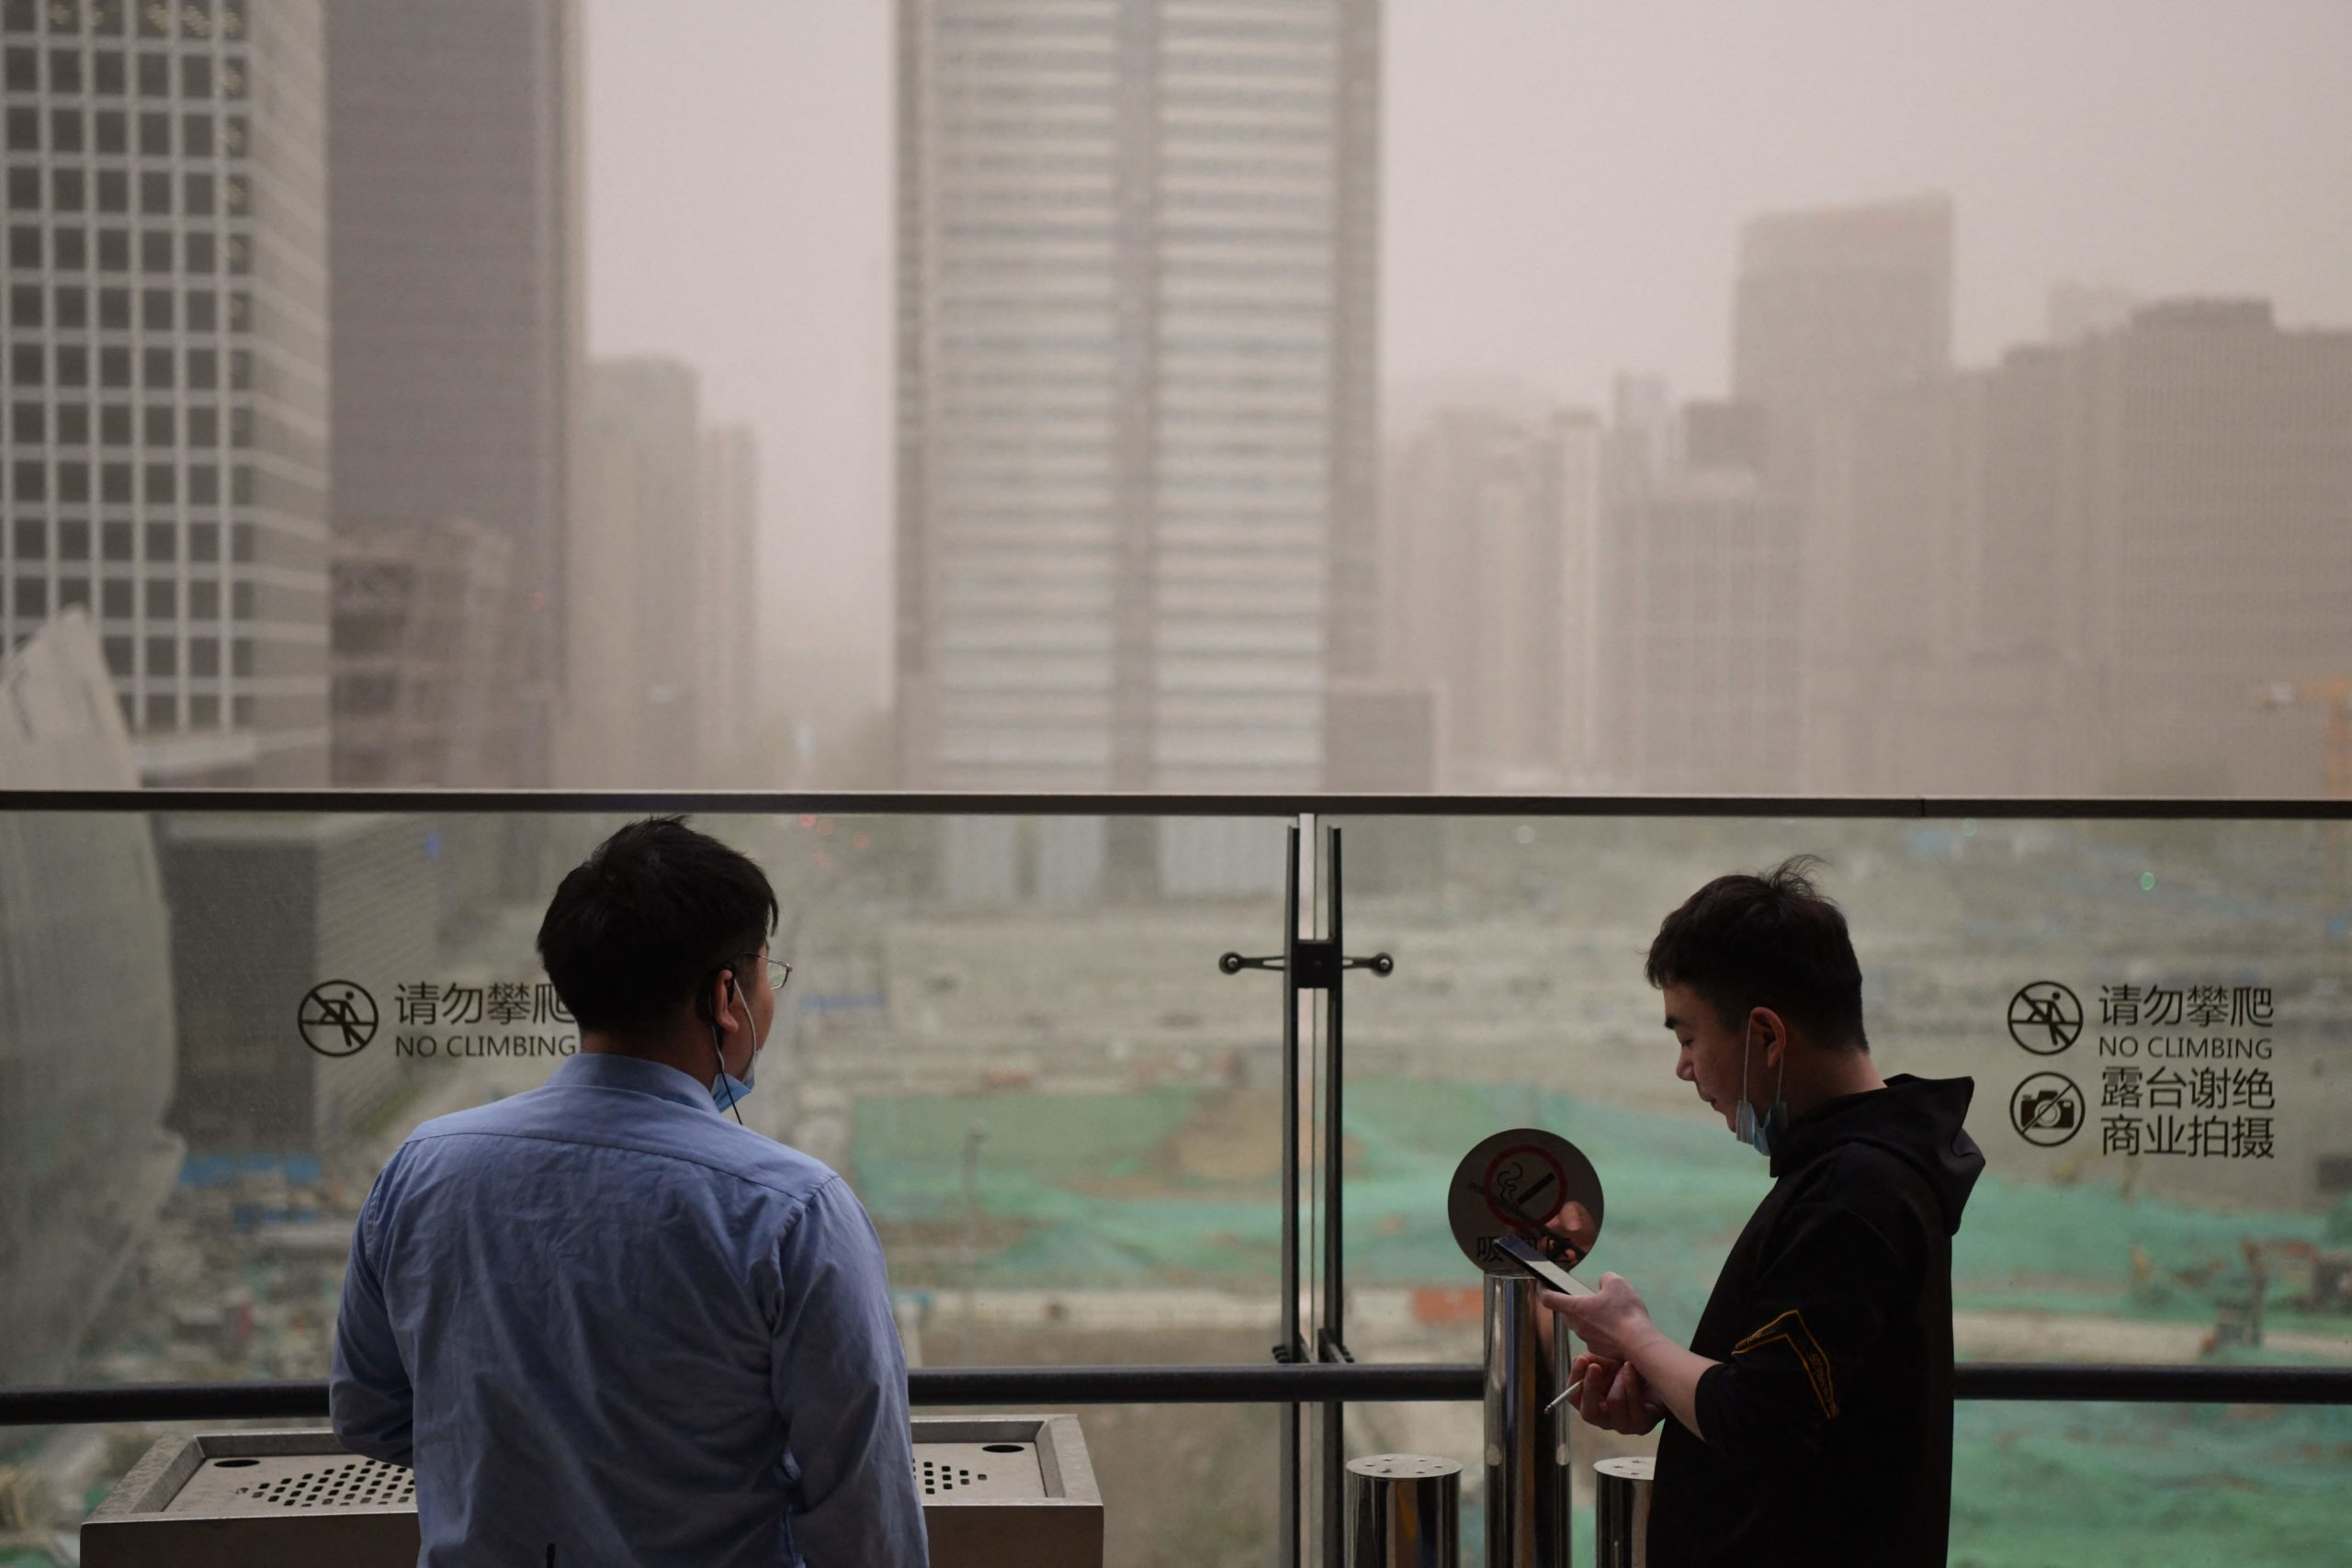 Two men smoke cigarettes in the central business district during a sandstorm in Beijing on April 15, 2021. (Photo by Greg Baker/AFP via Getty Images)